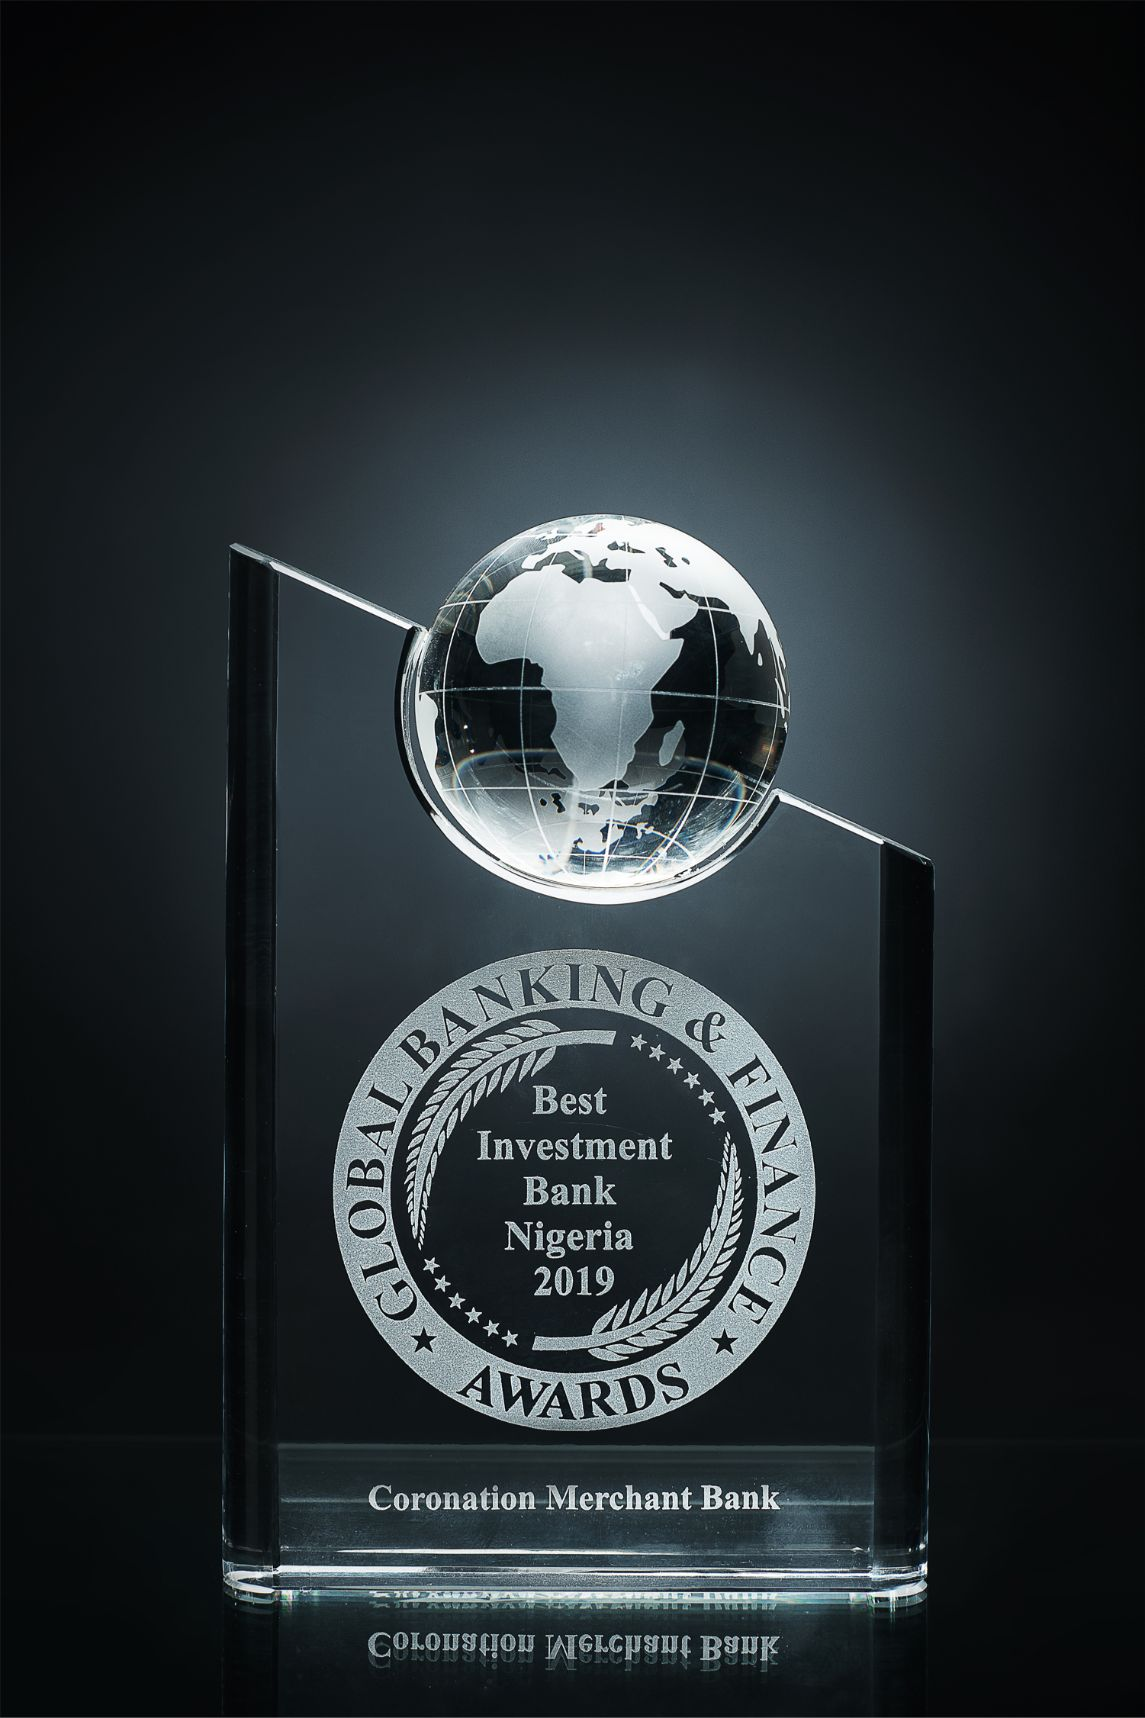 Coronation Merchant Bank Awards - Investment Bank of the Year